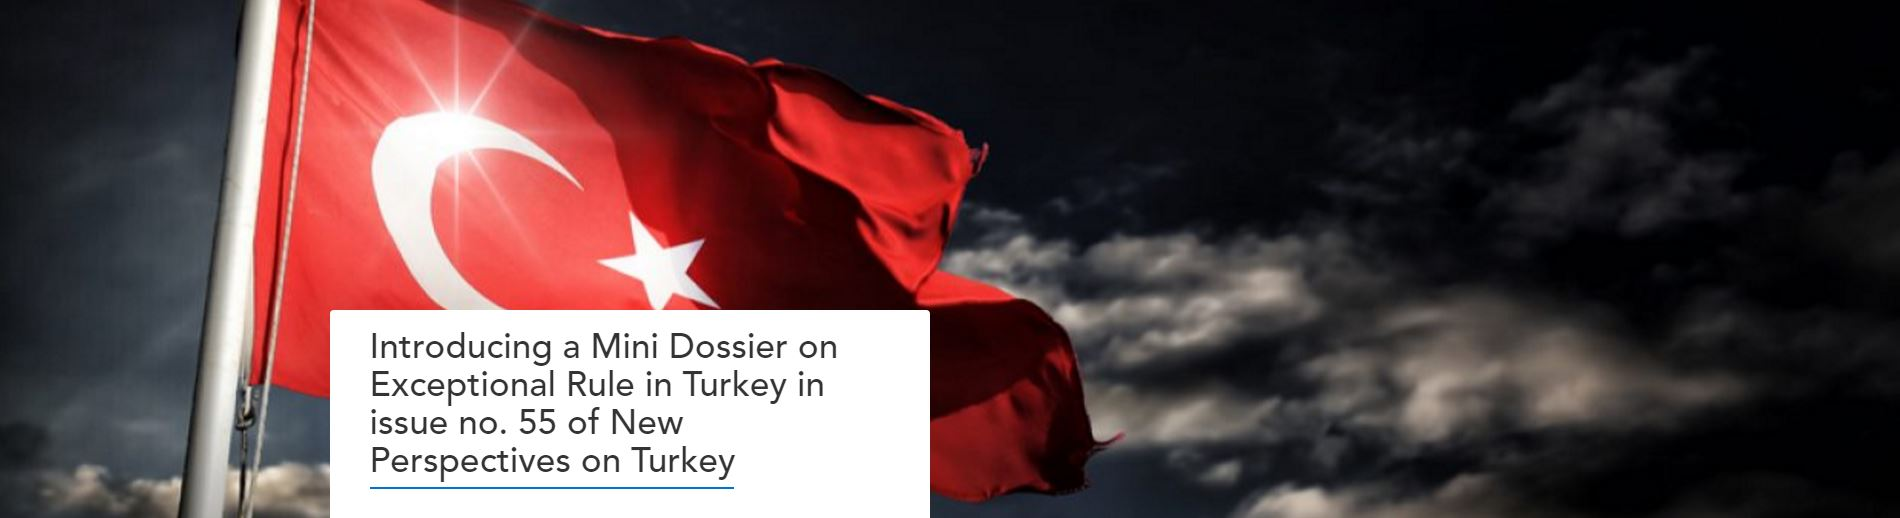 New Perspectives on Turkey Exceptional Rule